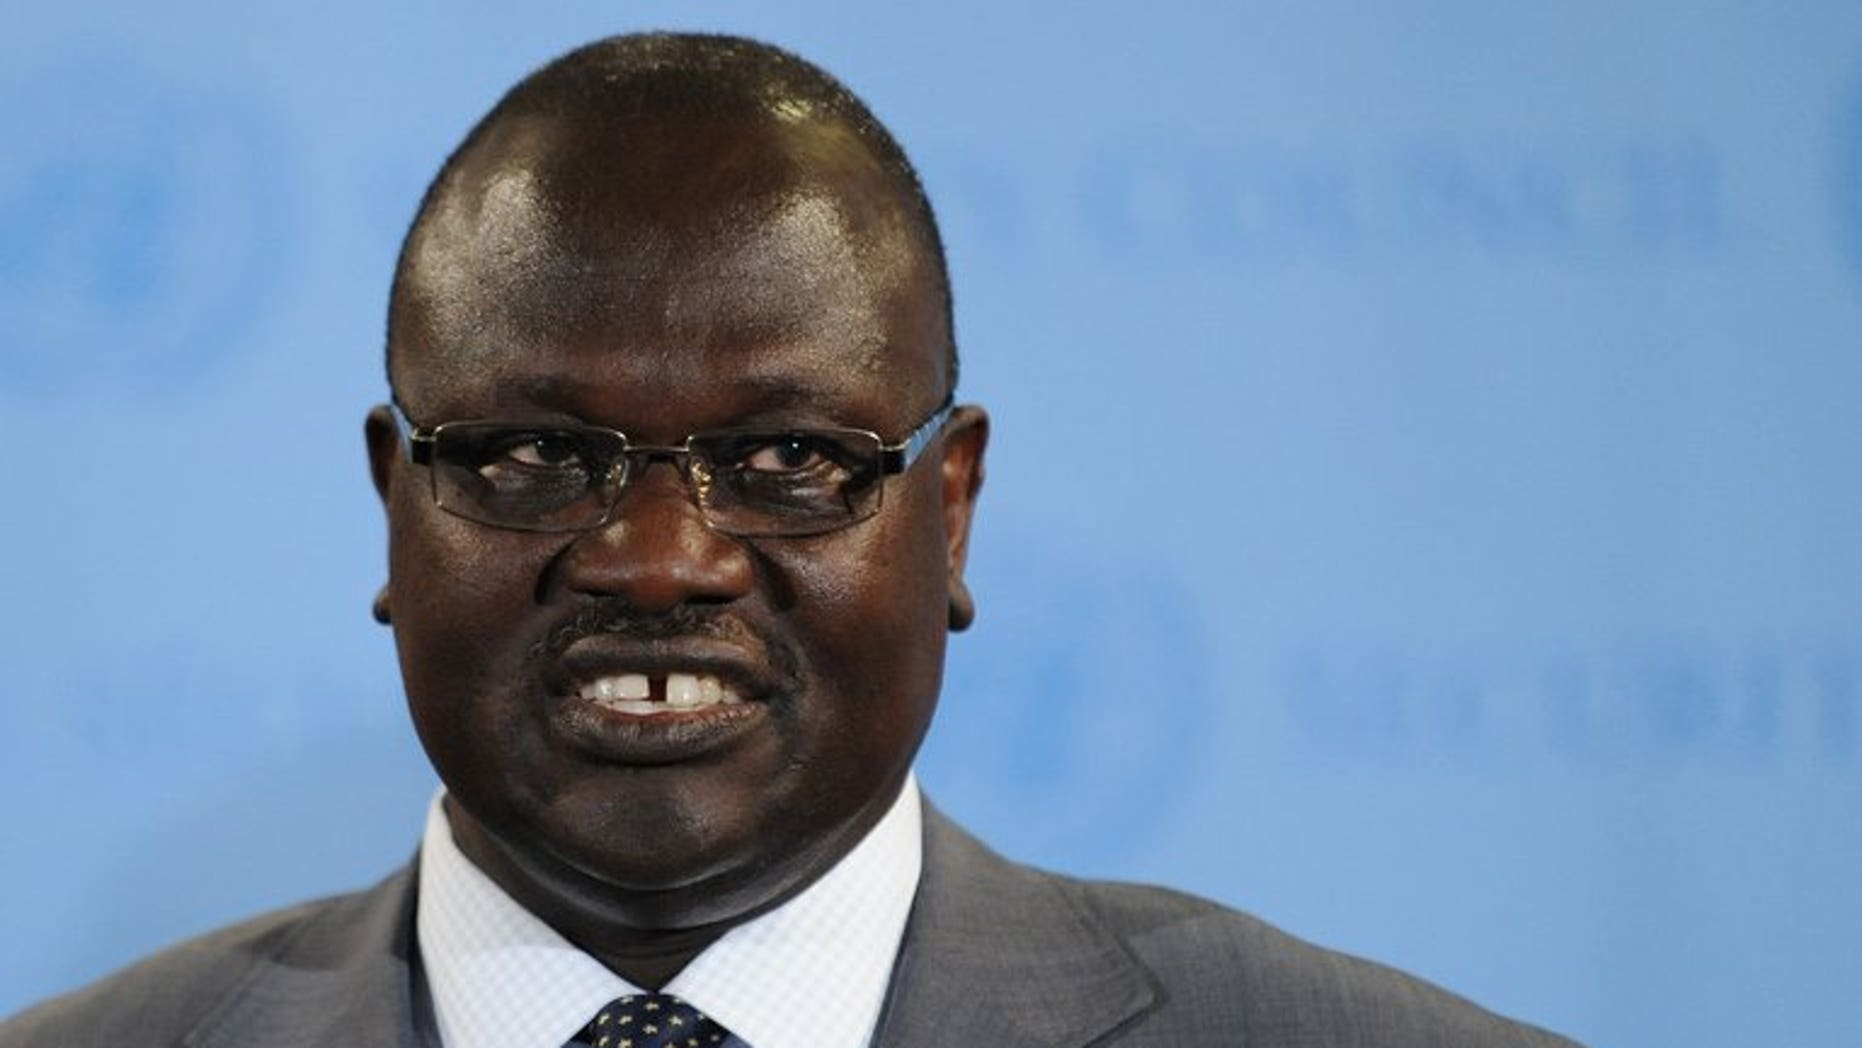 Riek Machar, Vice President of South Sudan, speaks to the media on July 13, 2011 at UN headquarters in New York. Machar arrived in the Sudanese capital seeking to ease tensions after Khartoum threatened to halt oil flows worth billions of dollars to both impoverished neighbours.